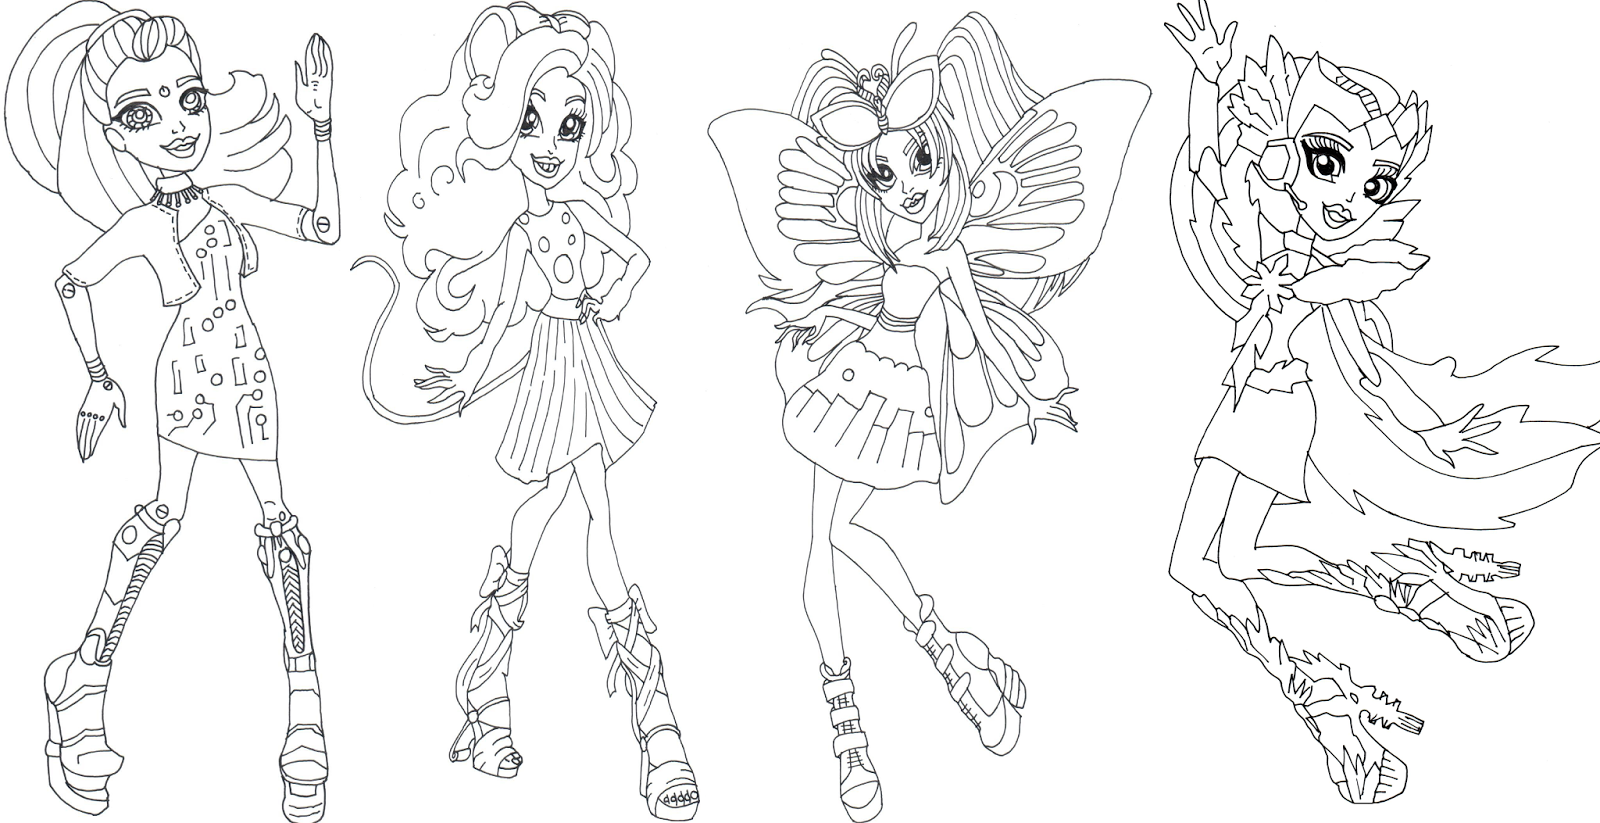 free printable monster high coloring sheet for elle eedee mouscedes king luna mothews and astranova in boo york